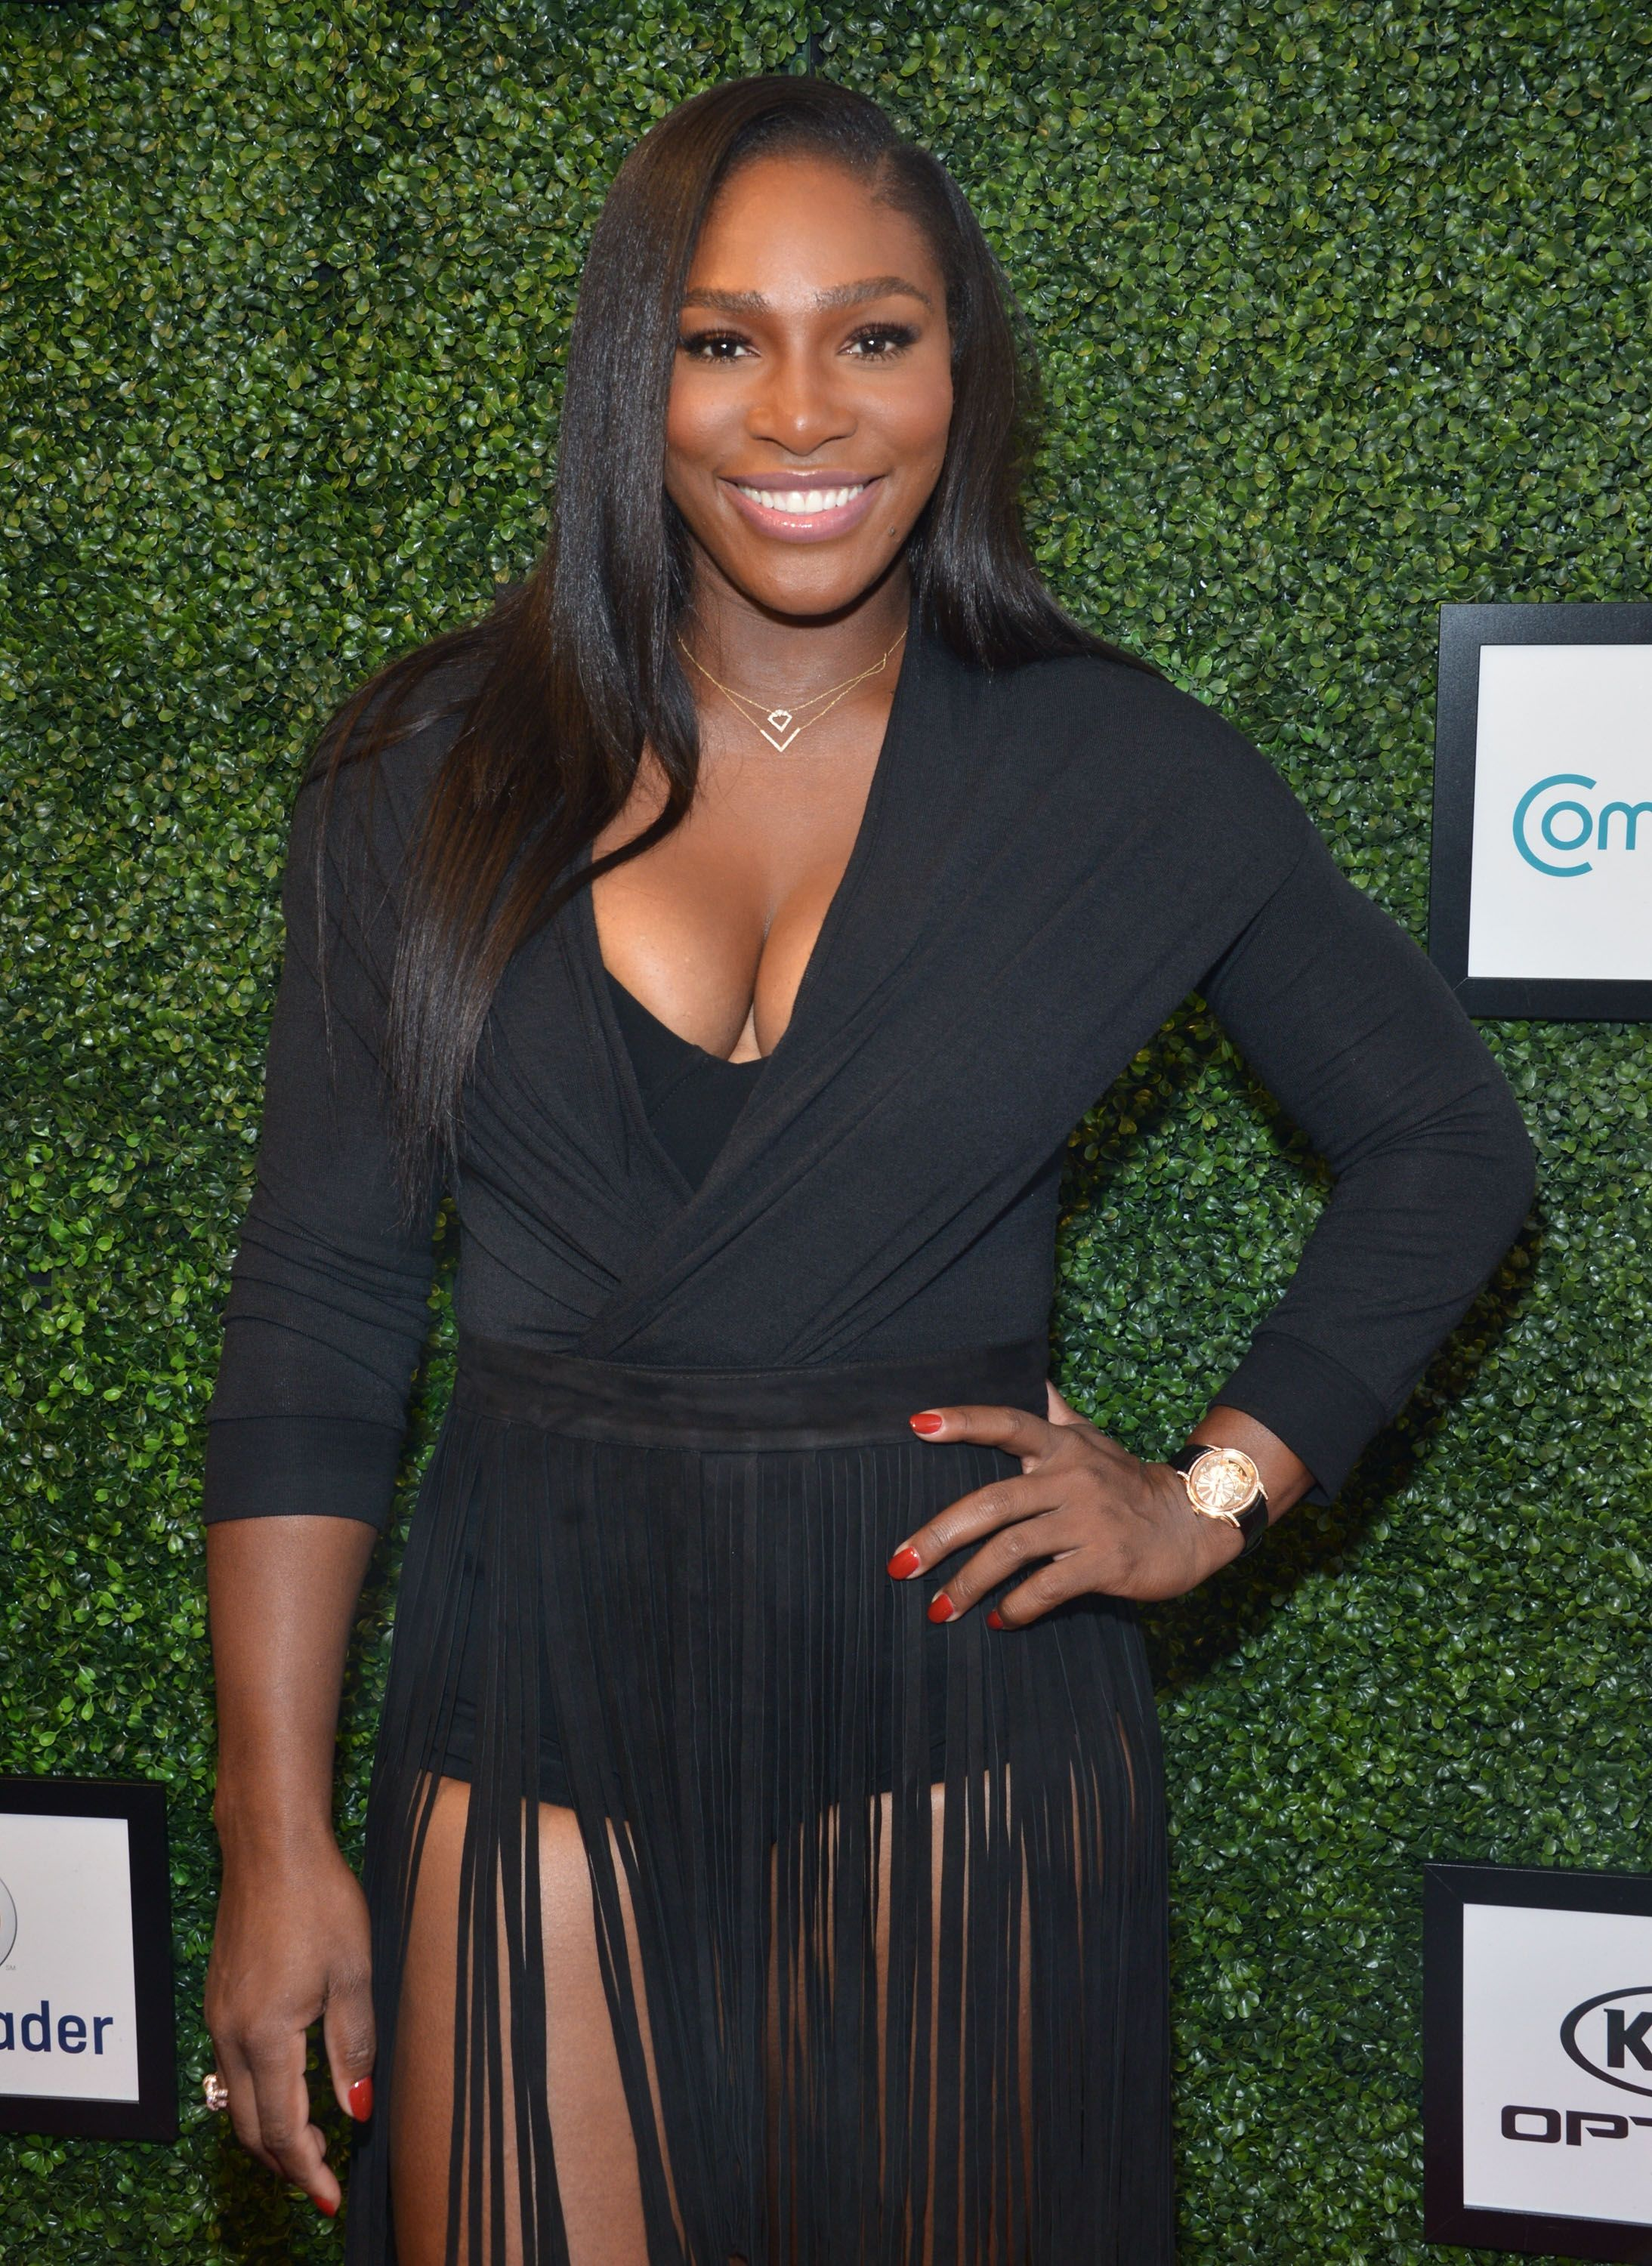 Serena Willams at the Serena Williams Signature Statement show on September 15, 2015 in N.Y. |  Photo: Getty Images